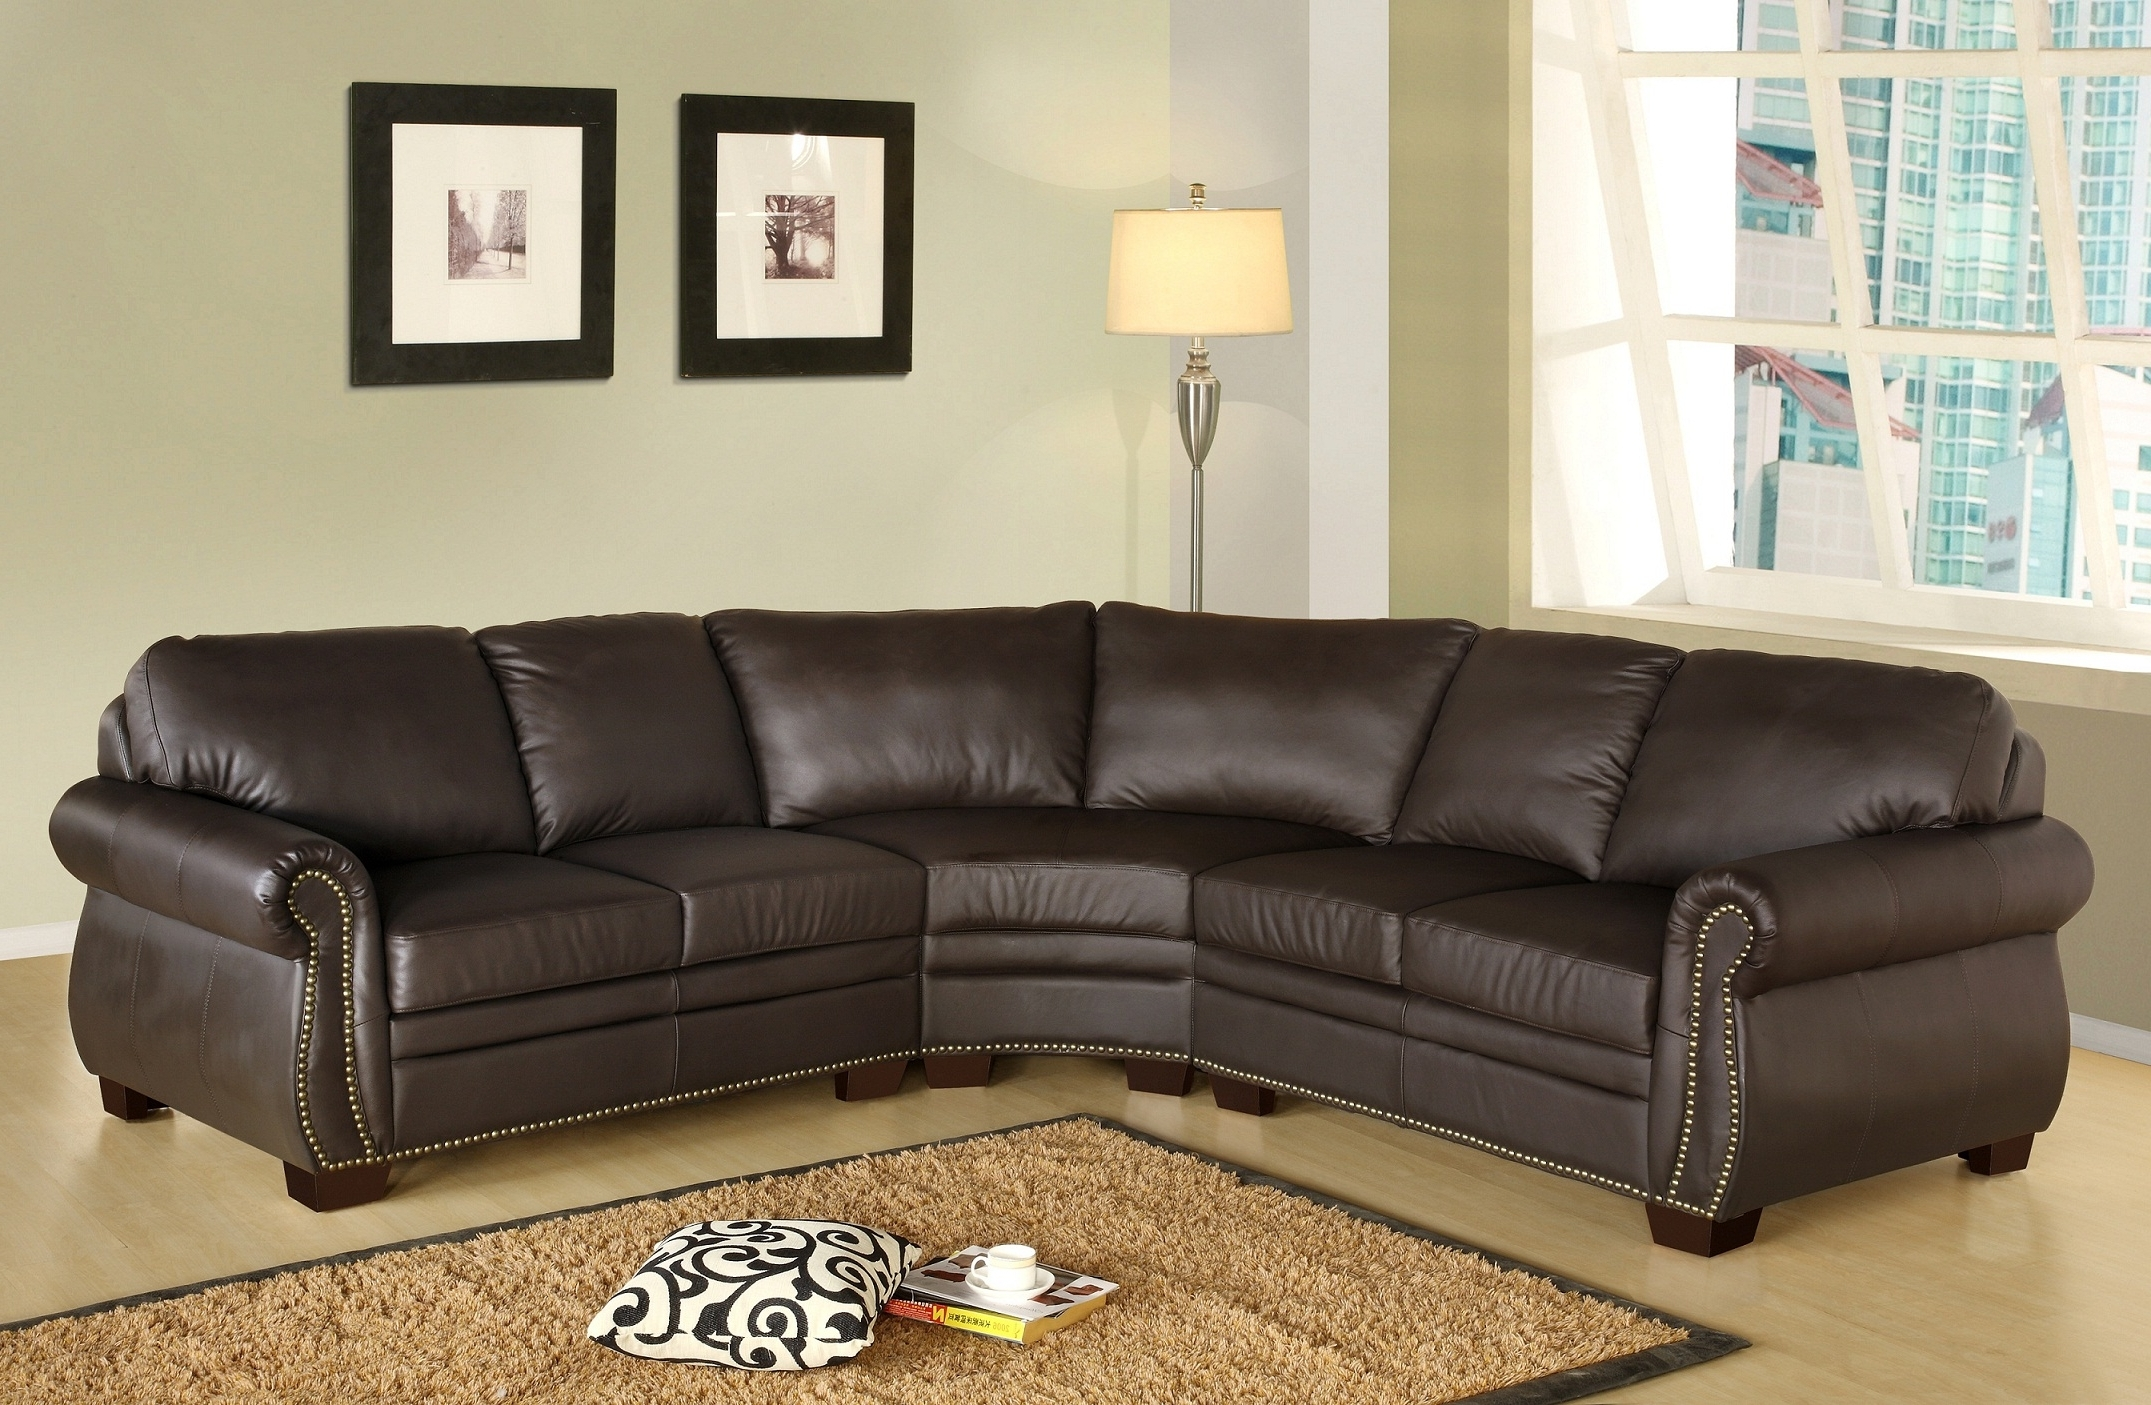 Overstock Credit Card Sectional Couch Ikea Wayfair Coupon Ethan Intended For Popular Abbyson Sectional Sofas (View 9 of 15)